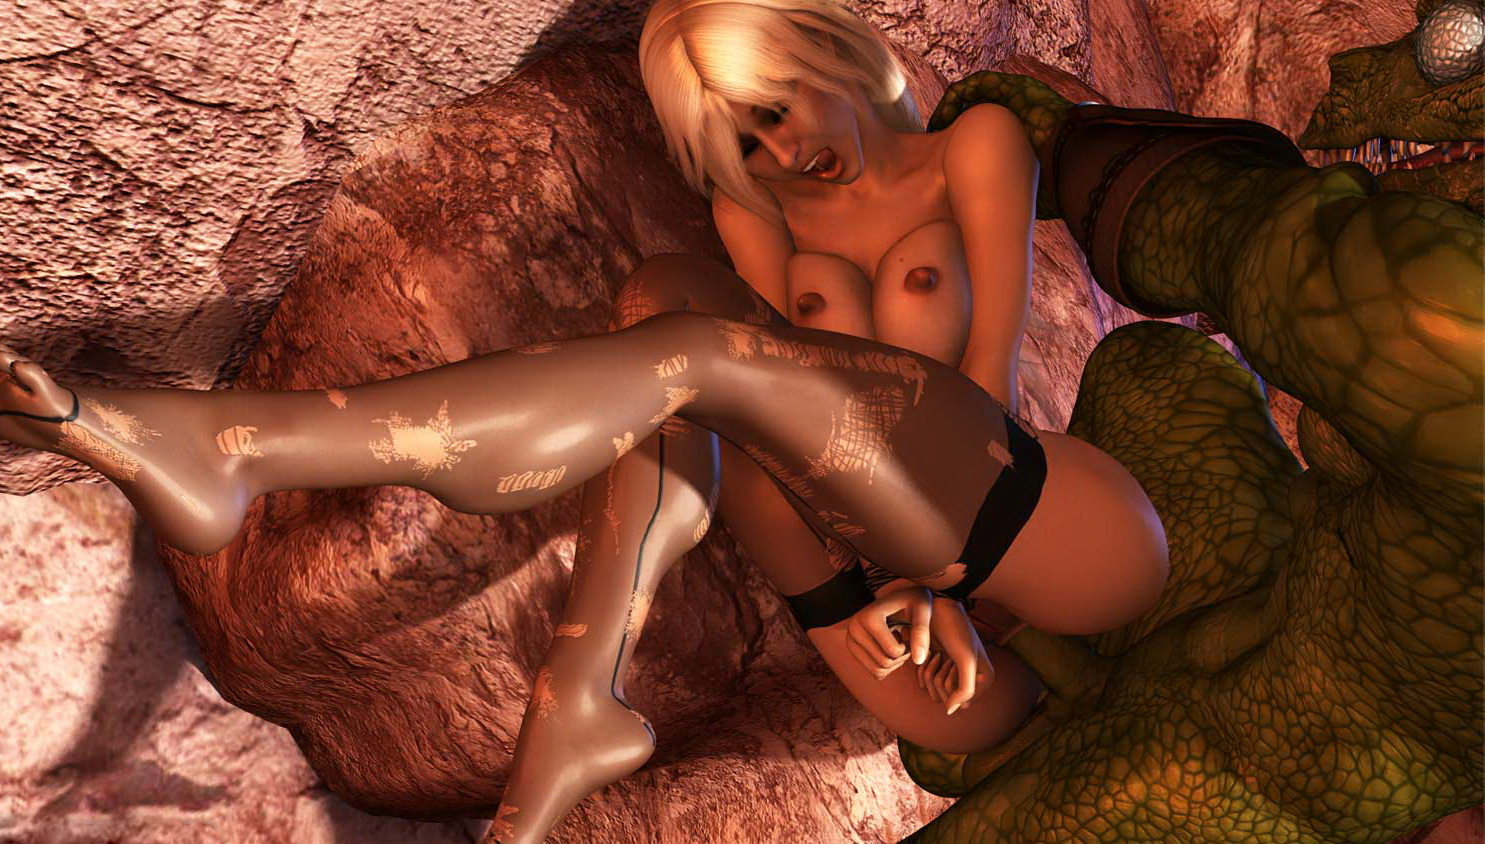 3d demons monsters and girl porn gallery sexy picture